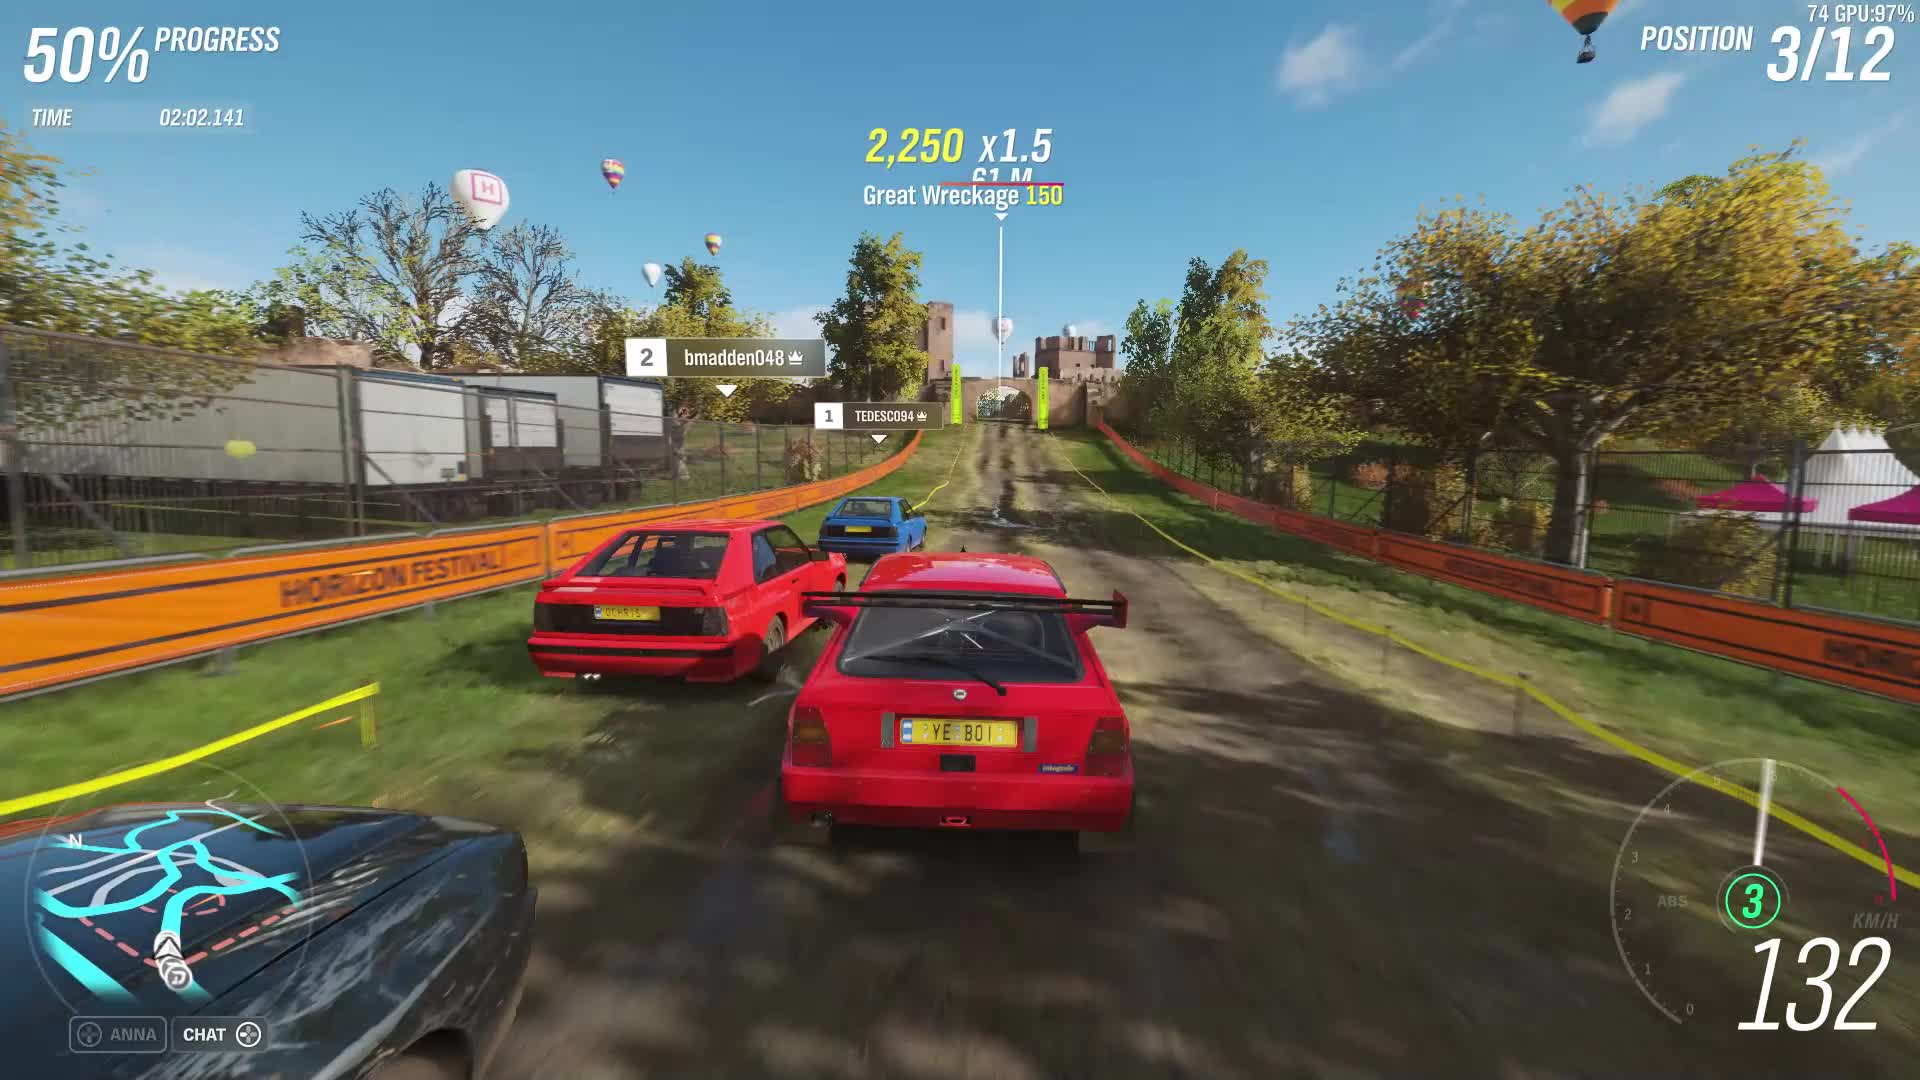 Forza Horizon 2 Gifs Search | Search & Share on Homdor